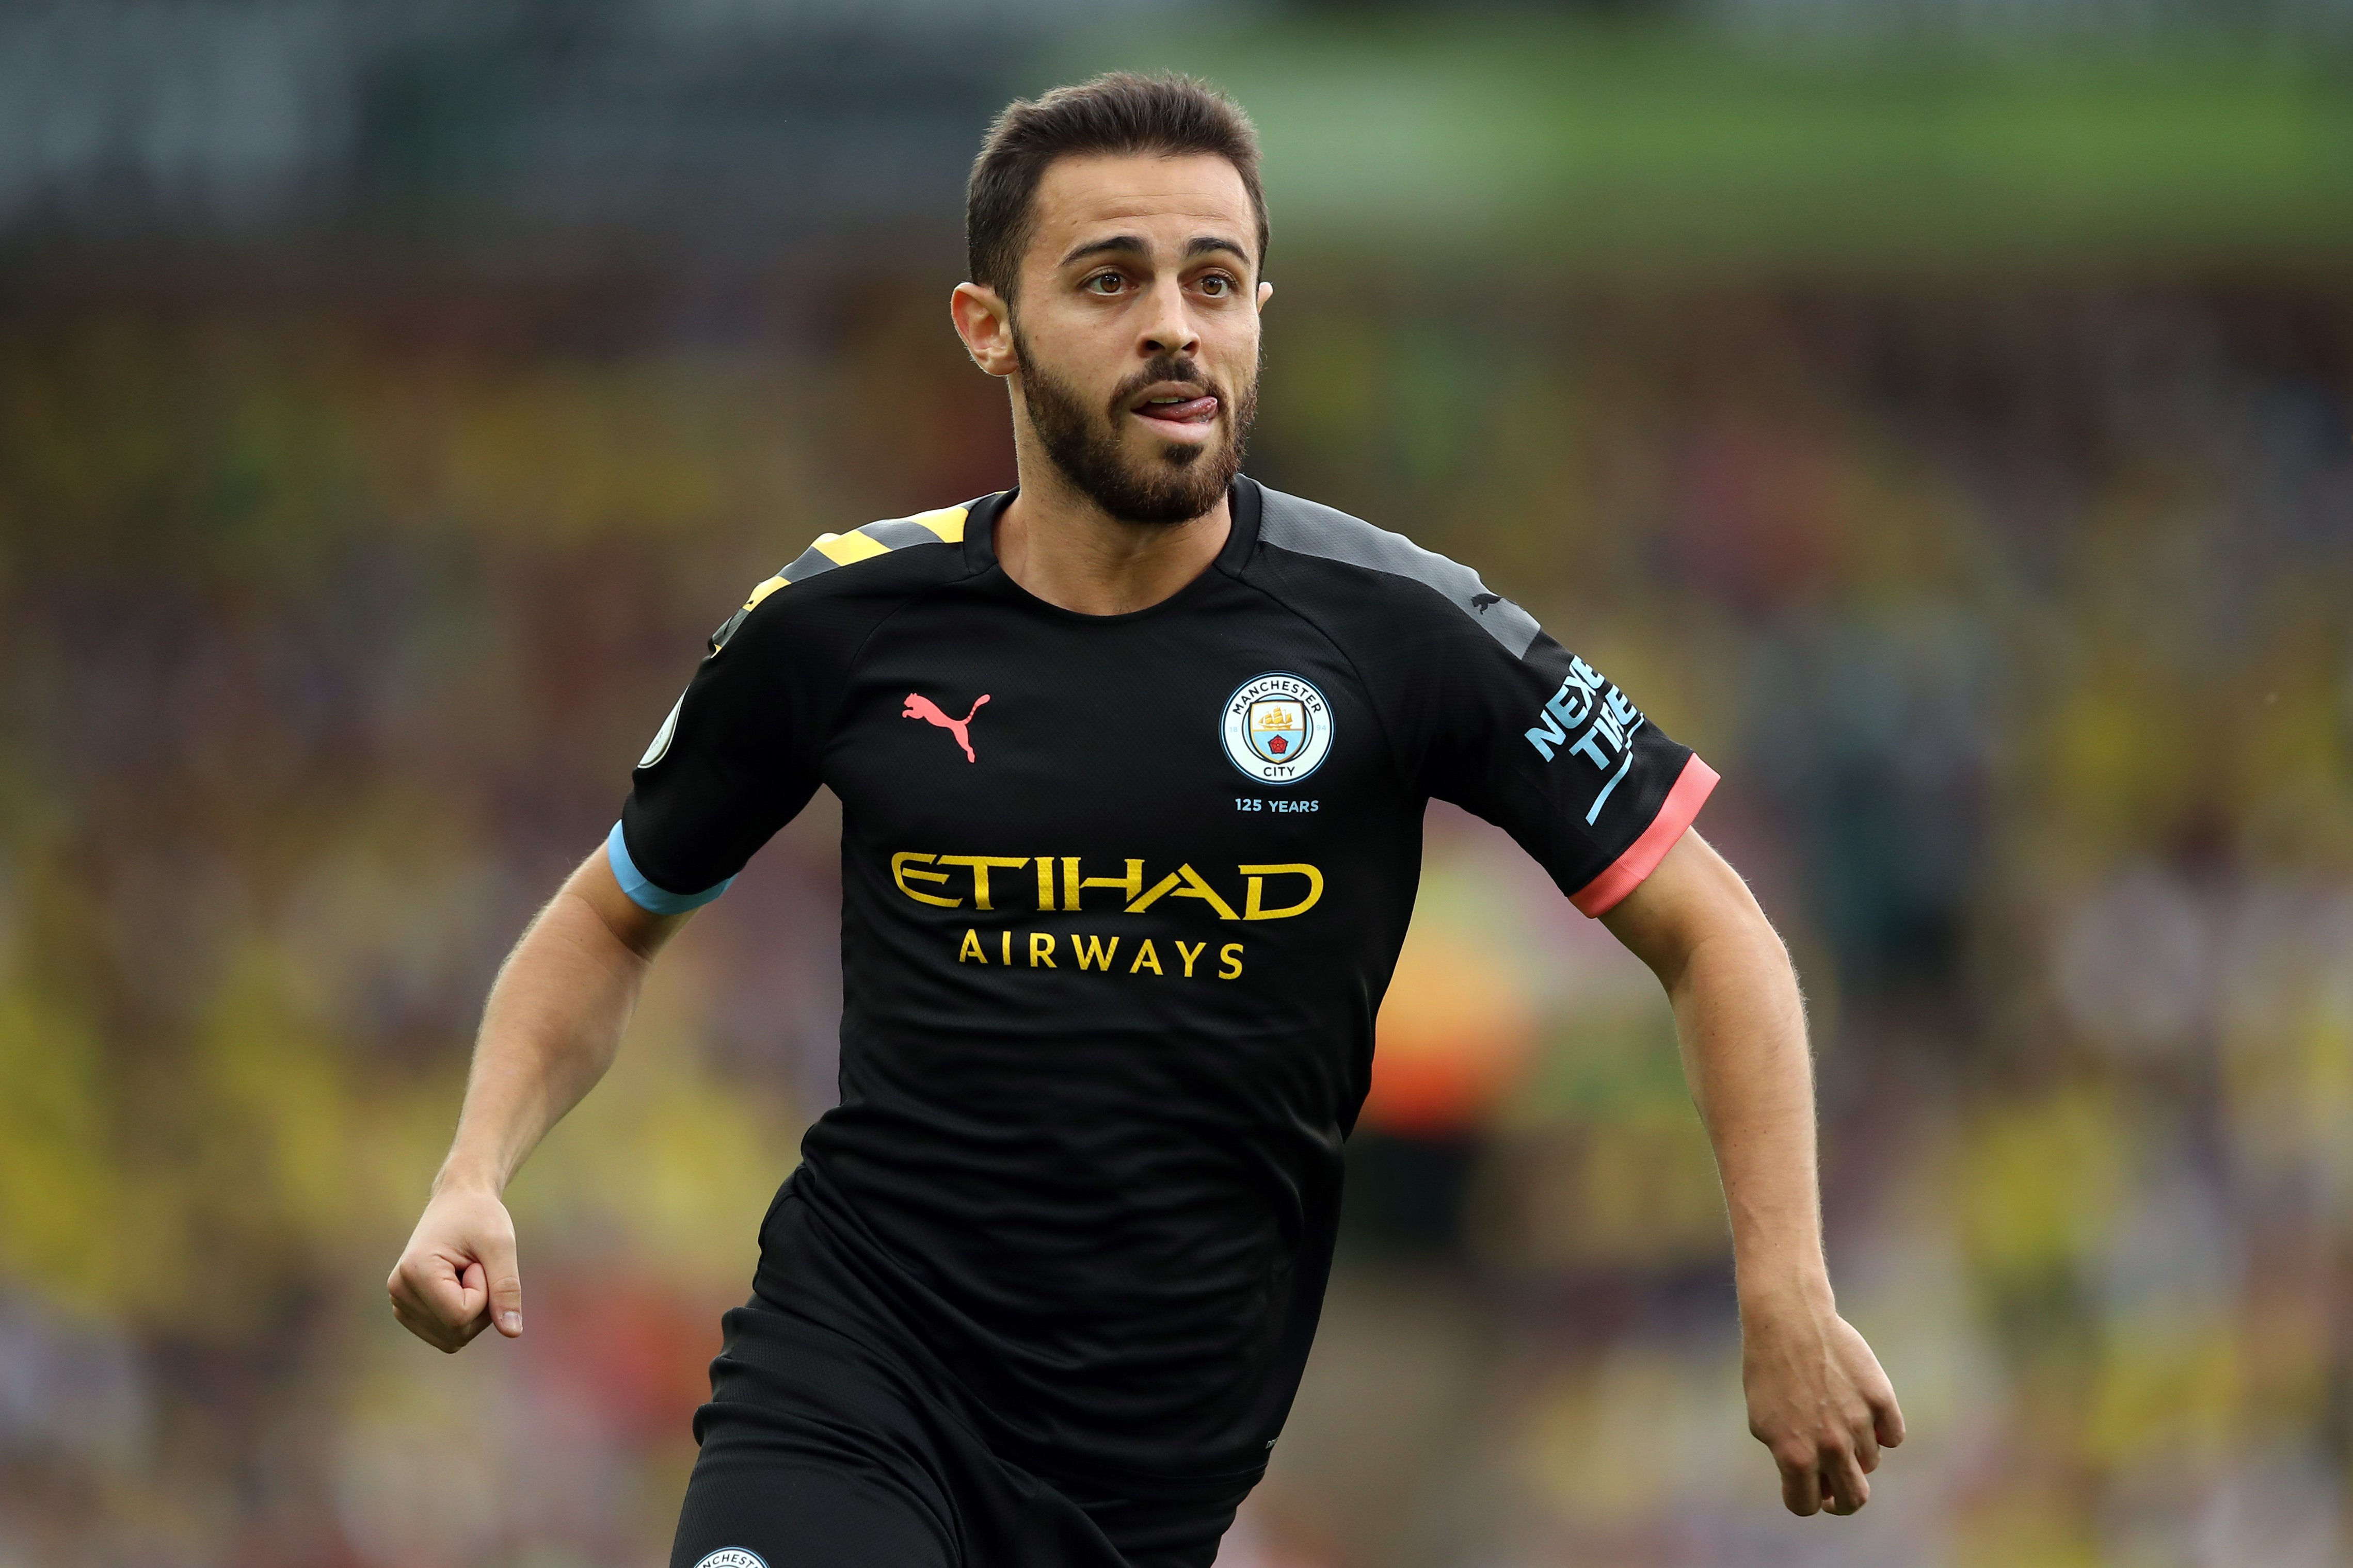 Bernardo Silva suspended and fined $64,000 over 'racist' tweet